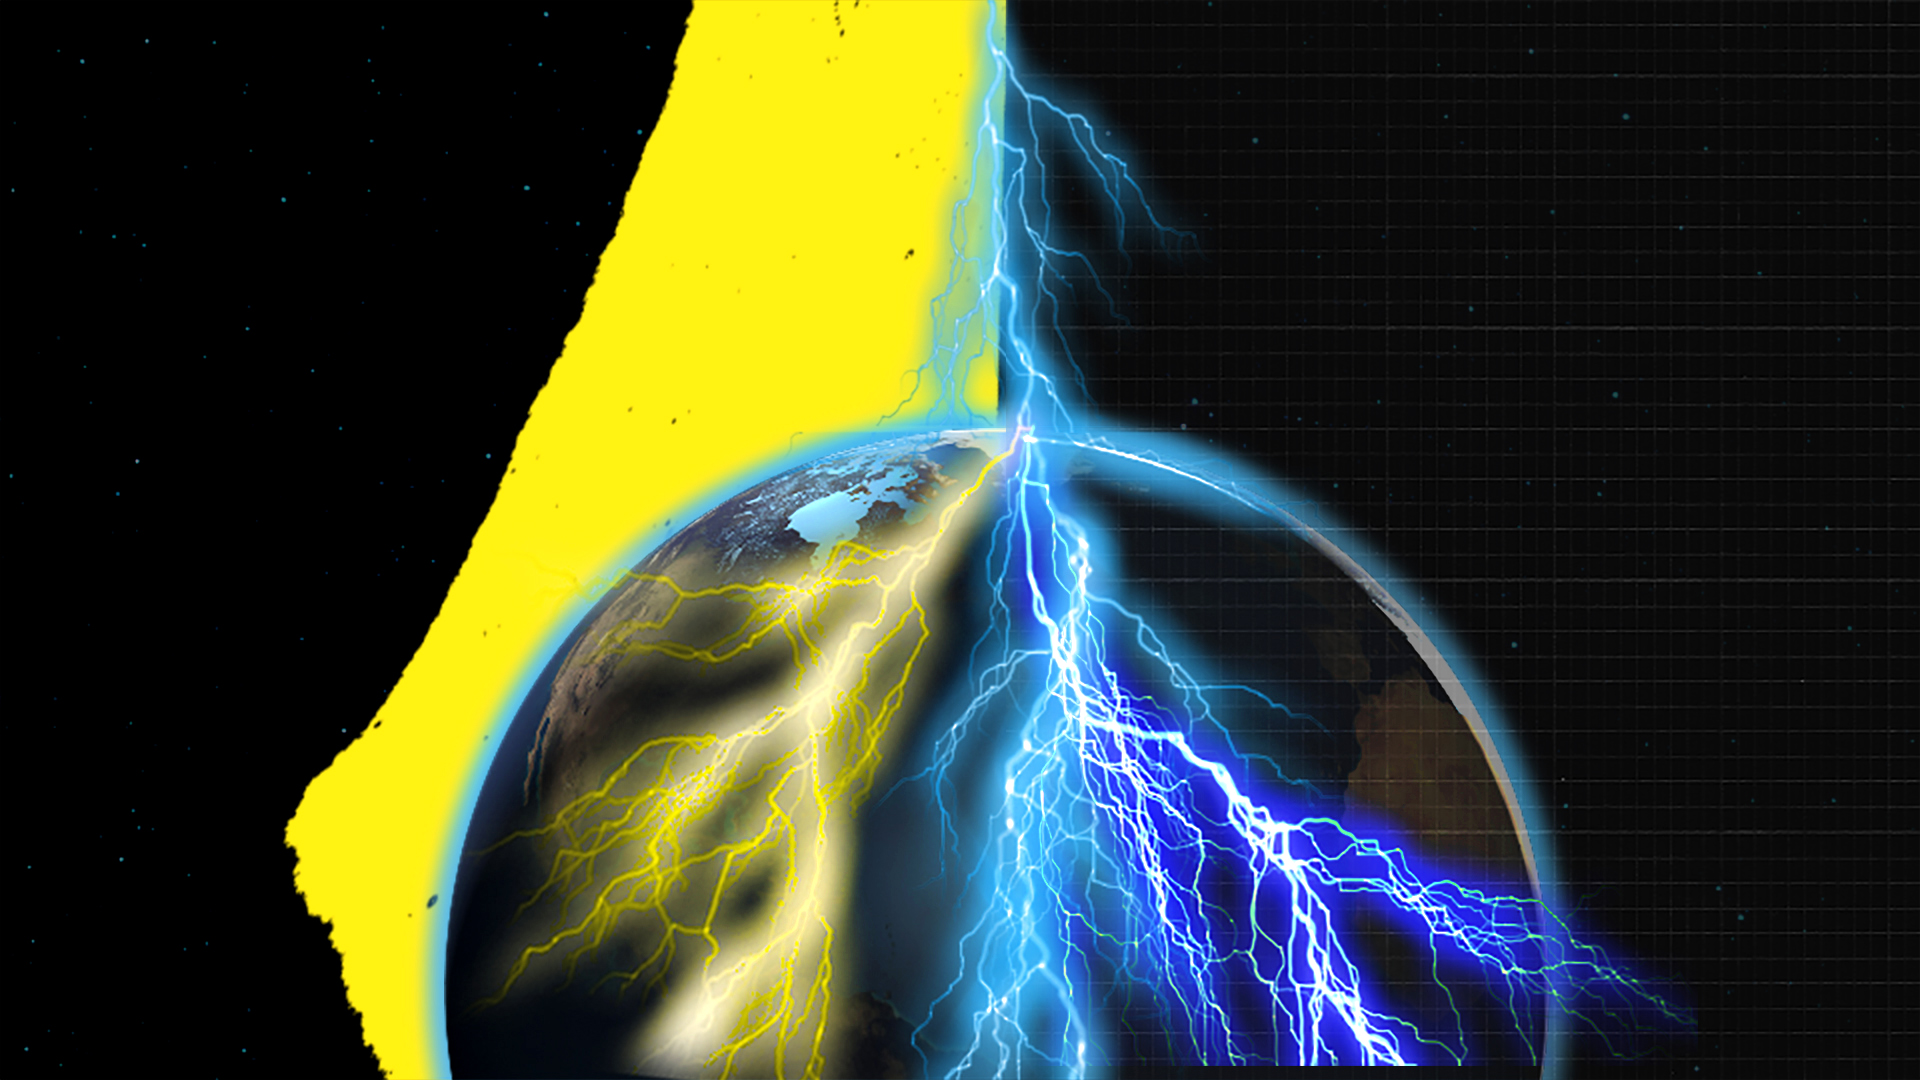 Extremely powerful cosmic rays are raining down on us. No one knows where they come from.